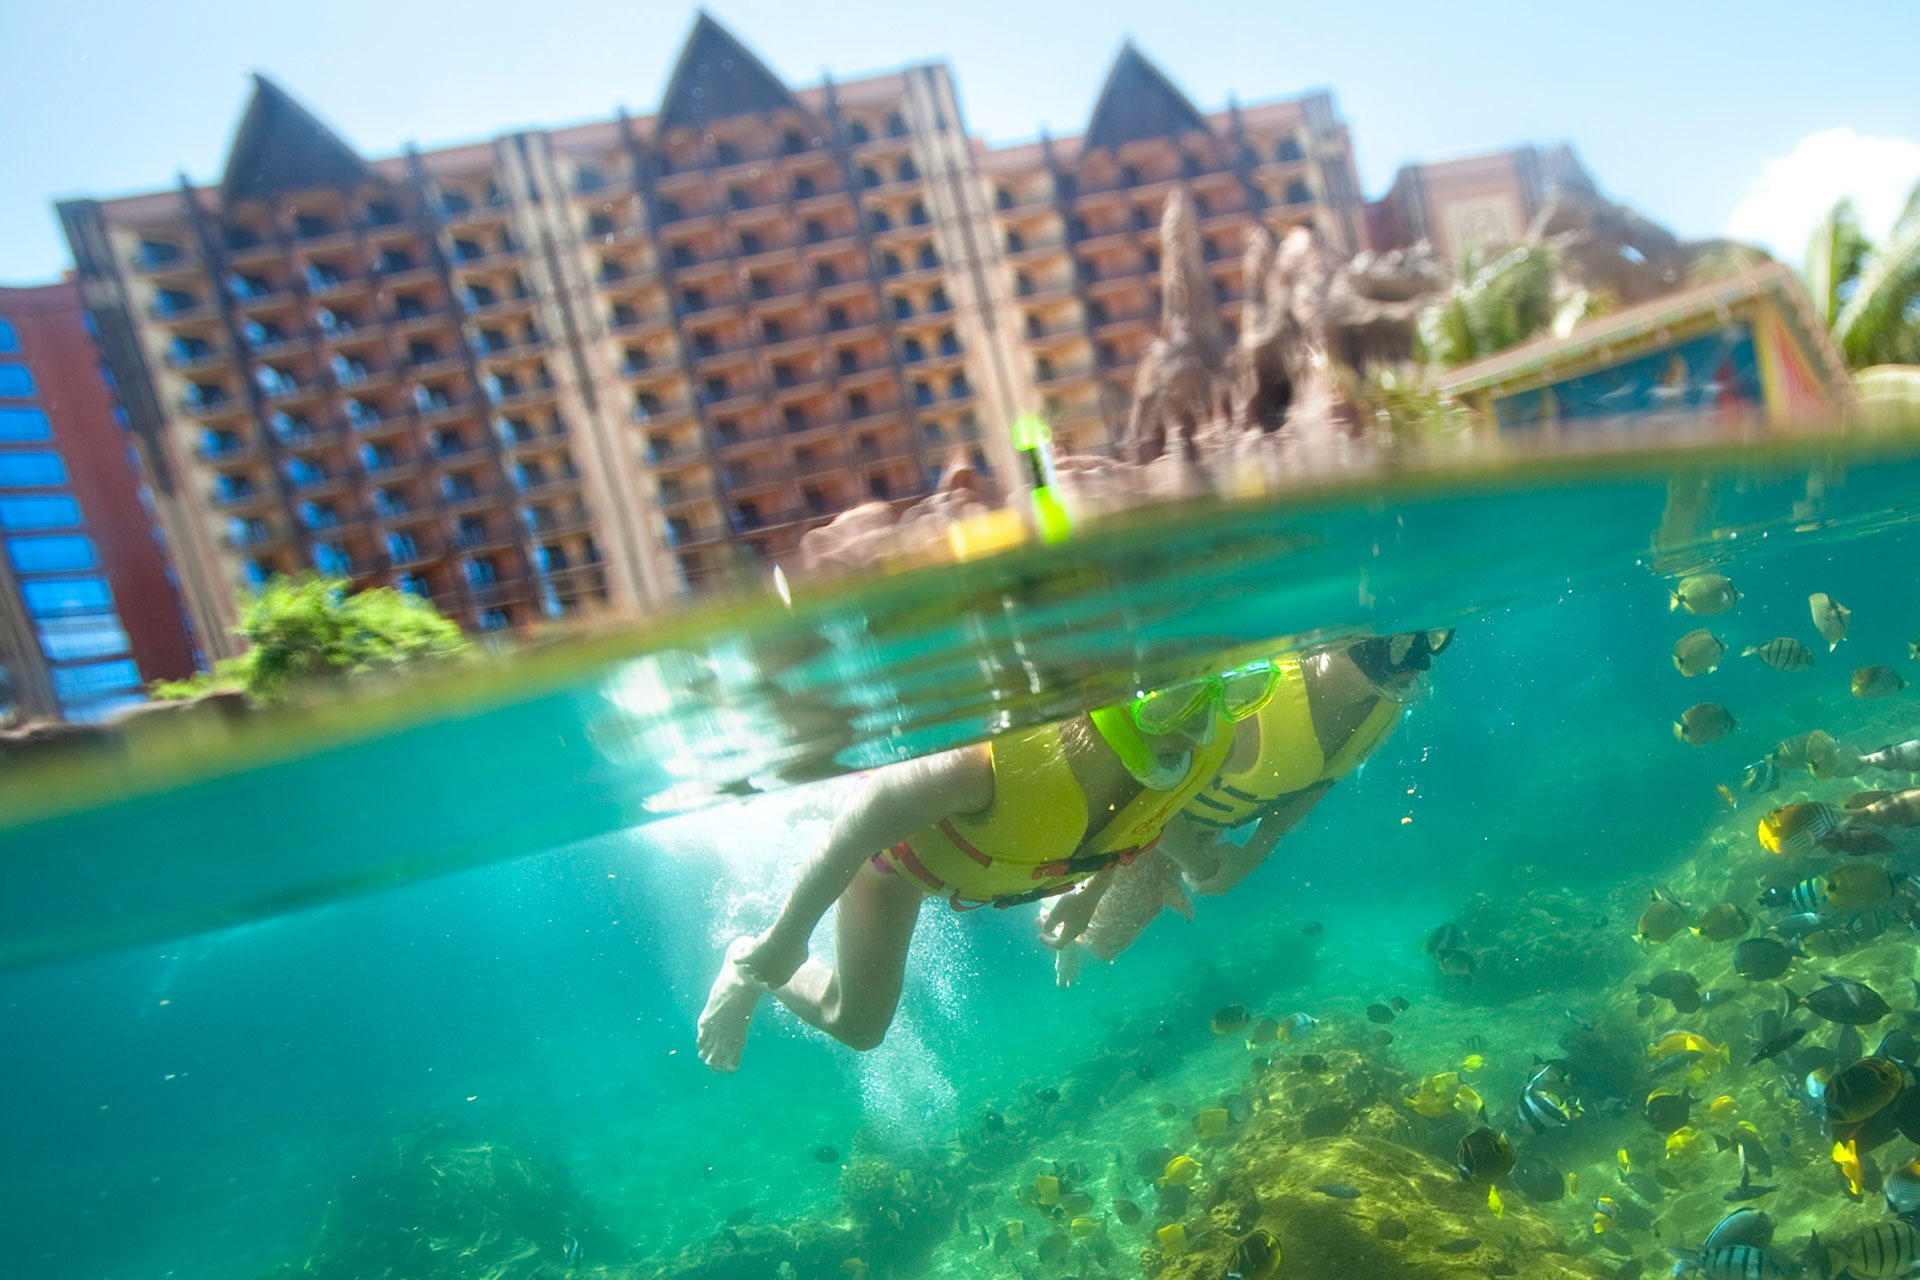 Snorkeling at Aulani, A Disney Resort & Spa; Courtesy of Aulani, A Disney Resort & Spa